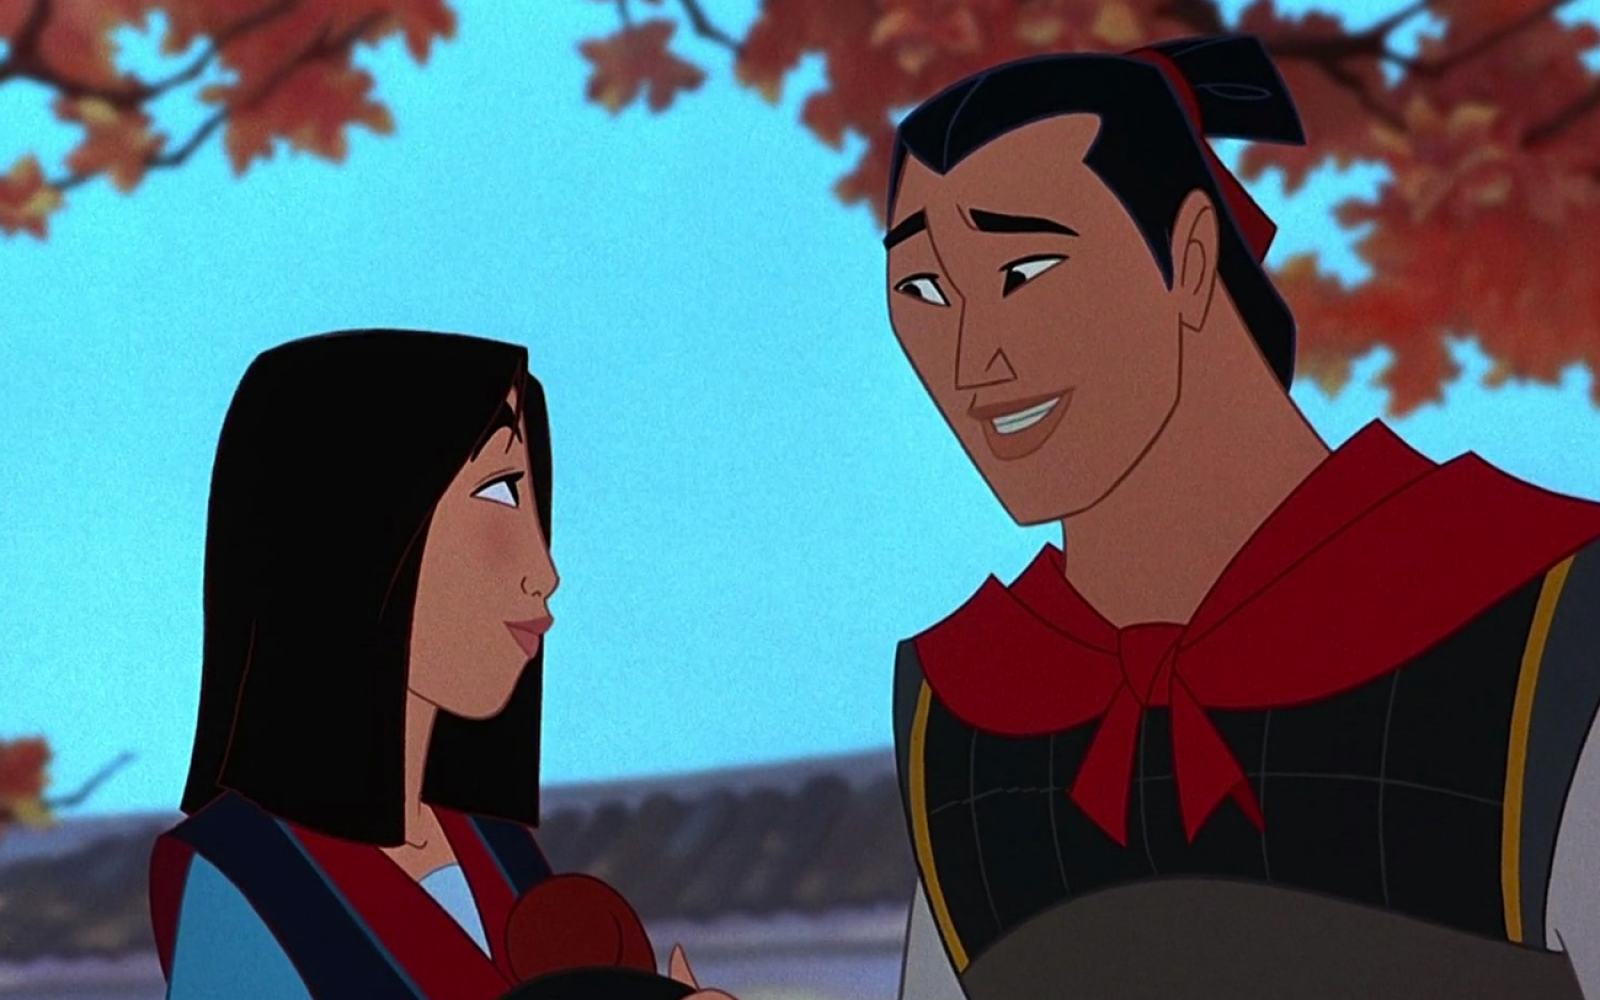 15 Quotes From Disney Movies That Simplistically Say 'I Love You'